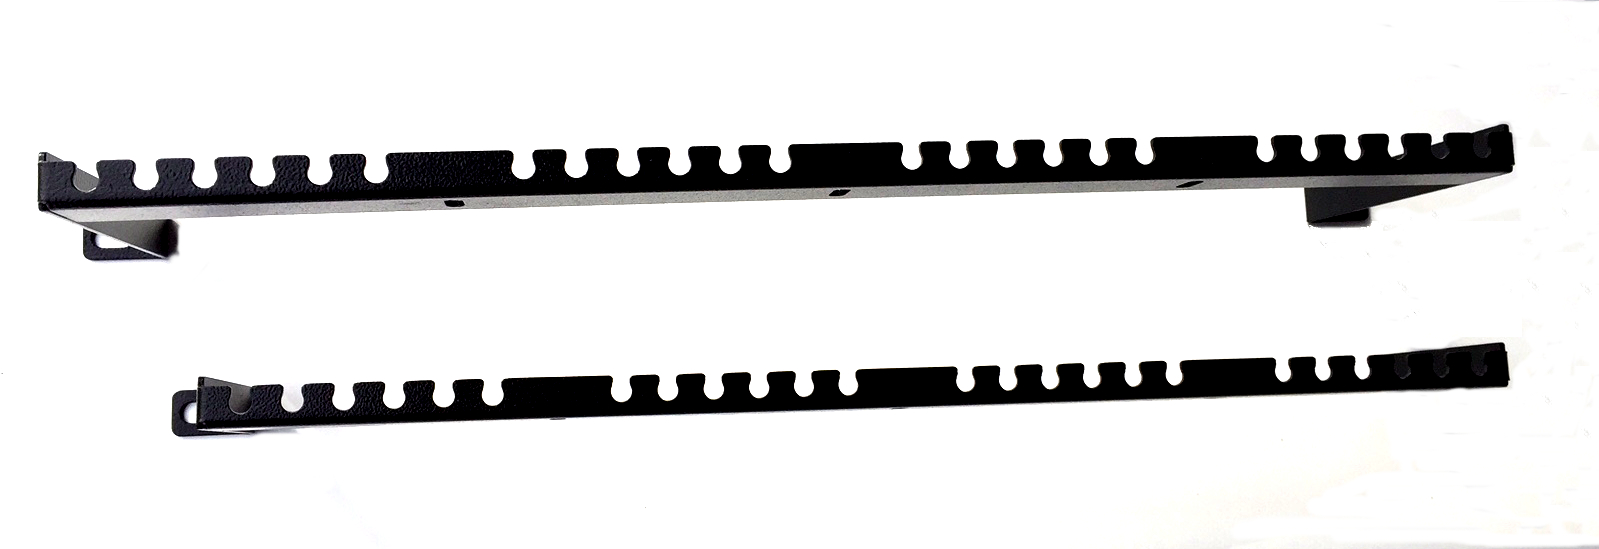 Cable Management Brackets, Patch Panels & Switch Bars for